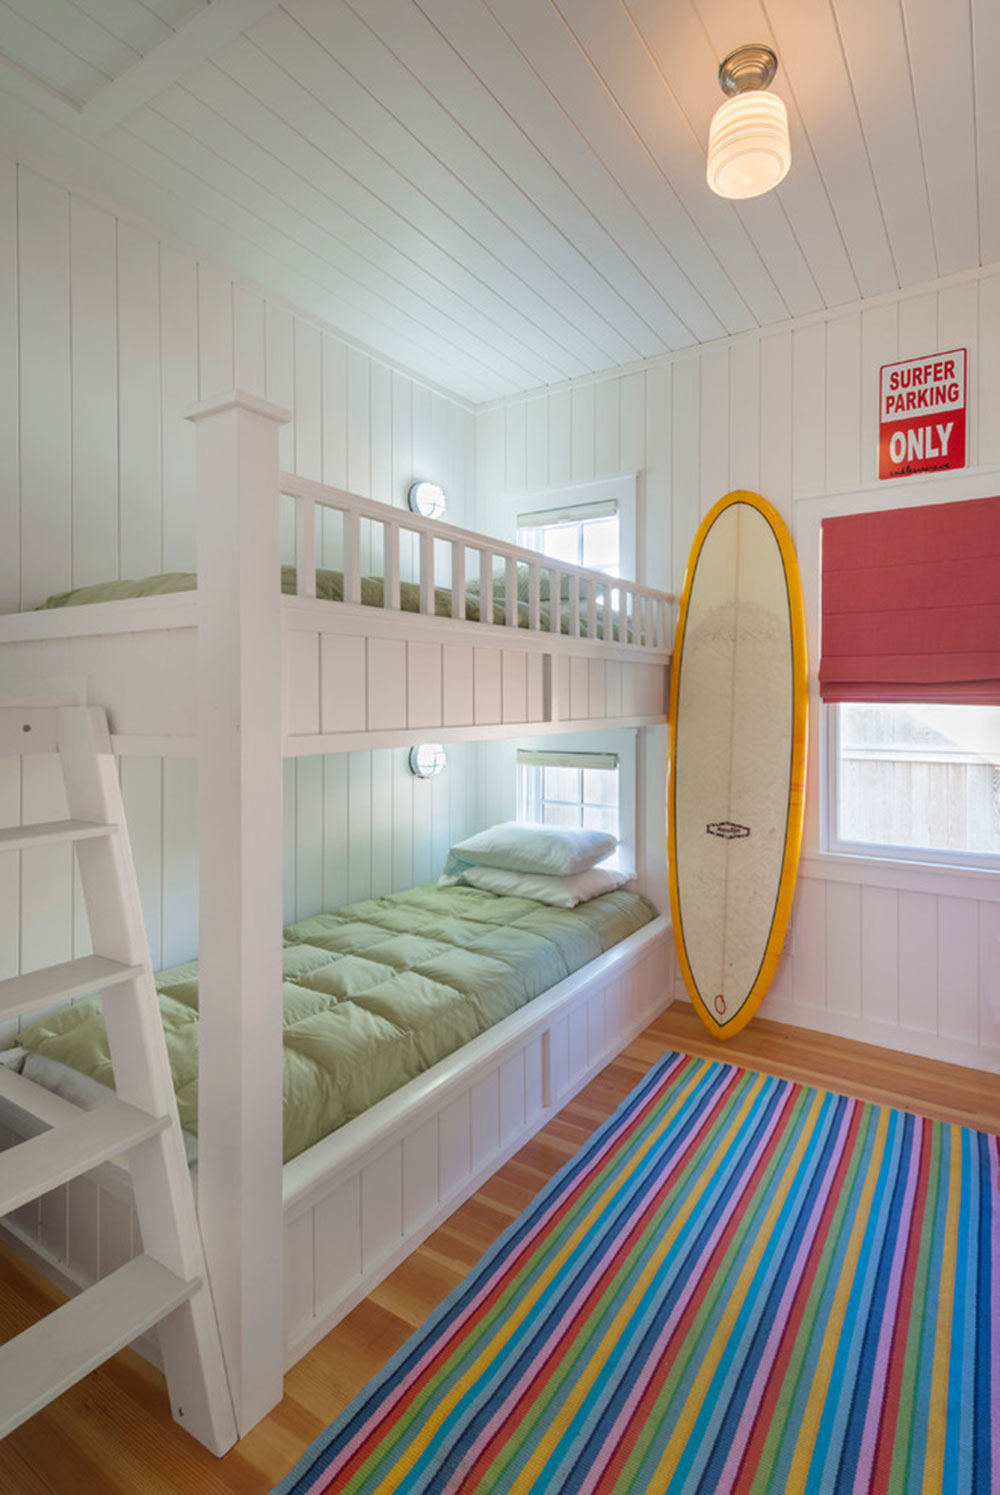 best bunk beds design ideas for kids (58 pictures)